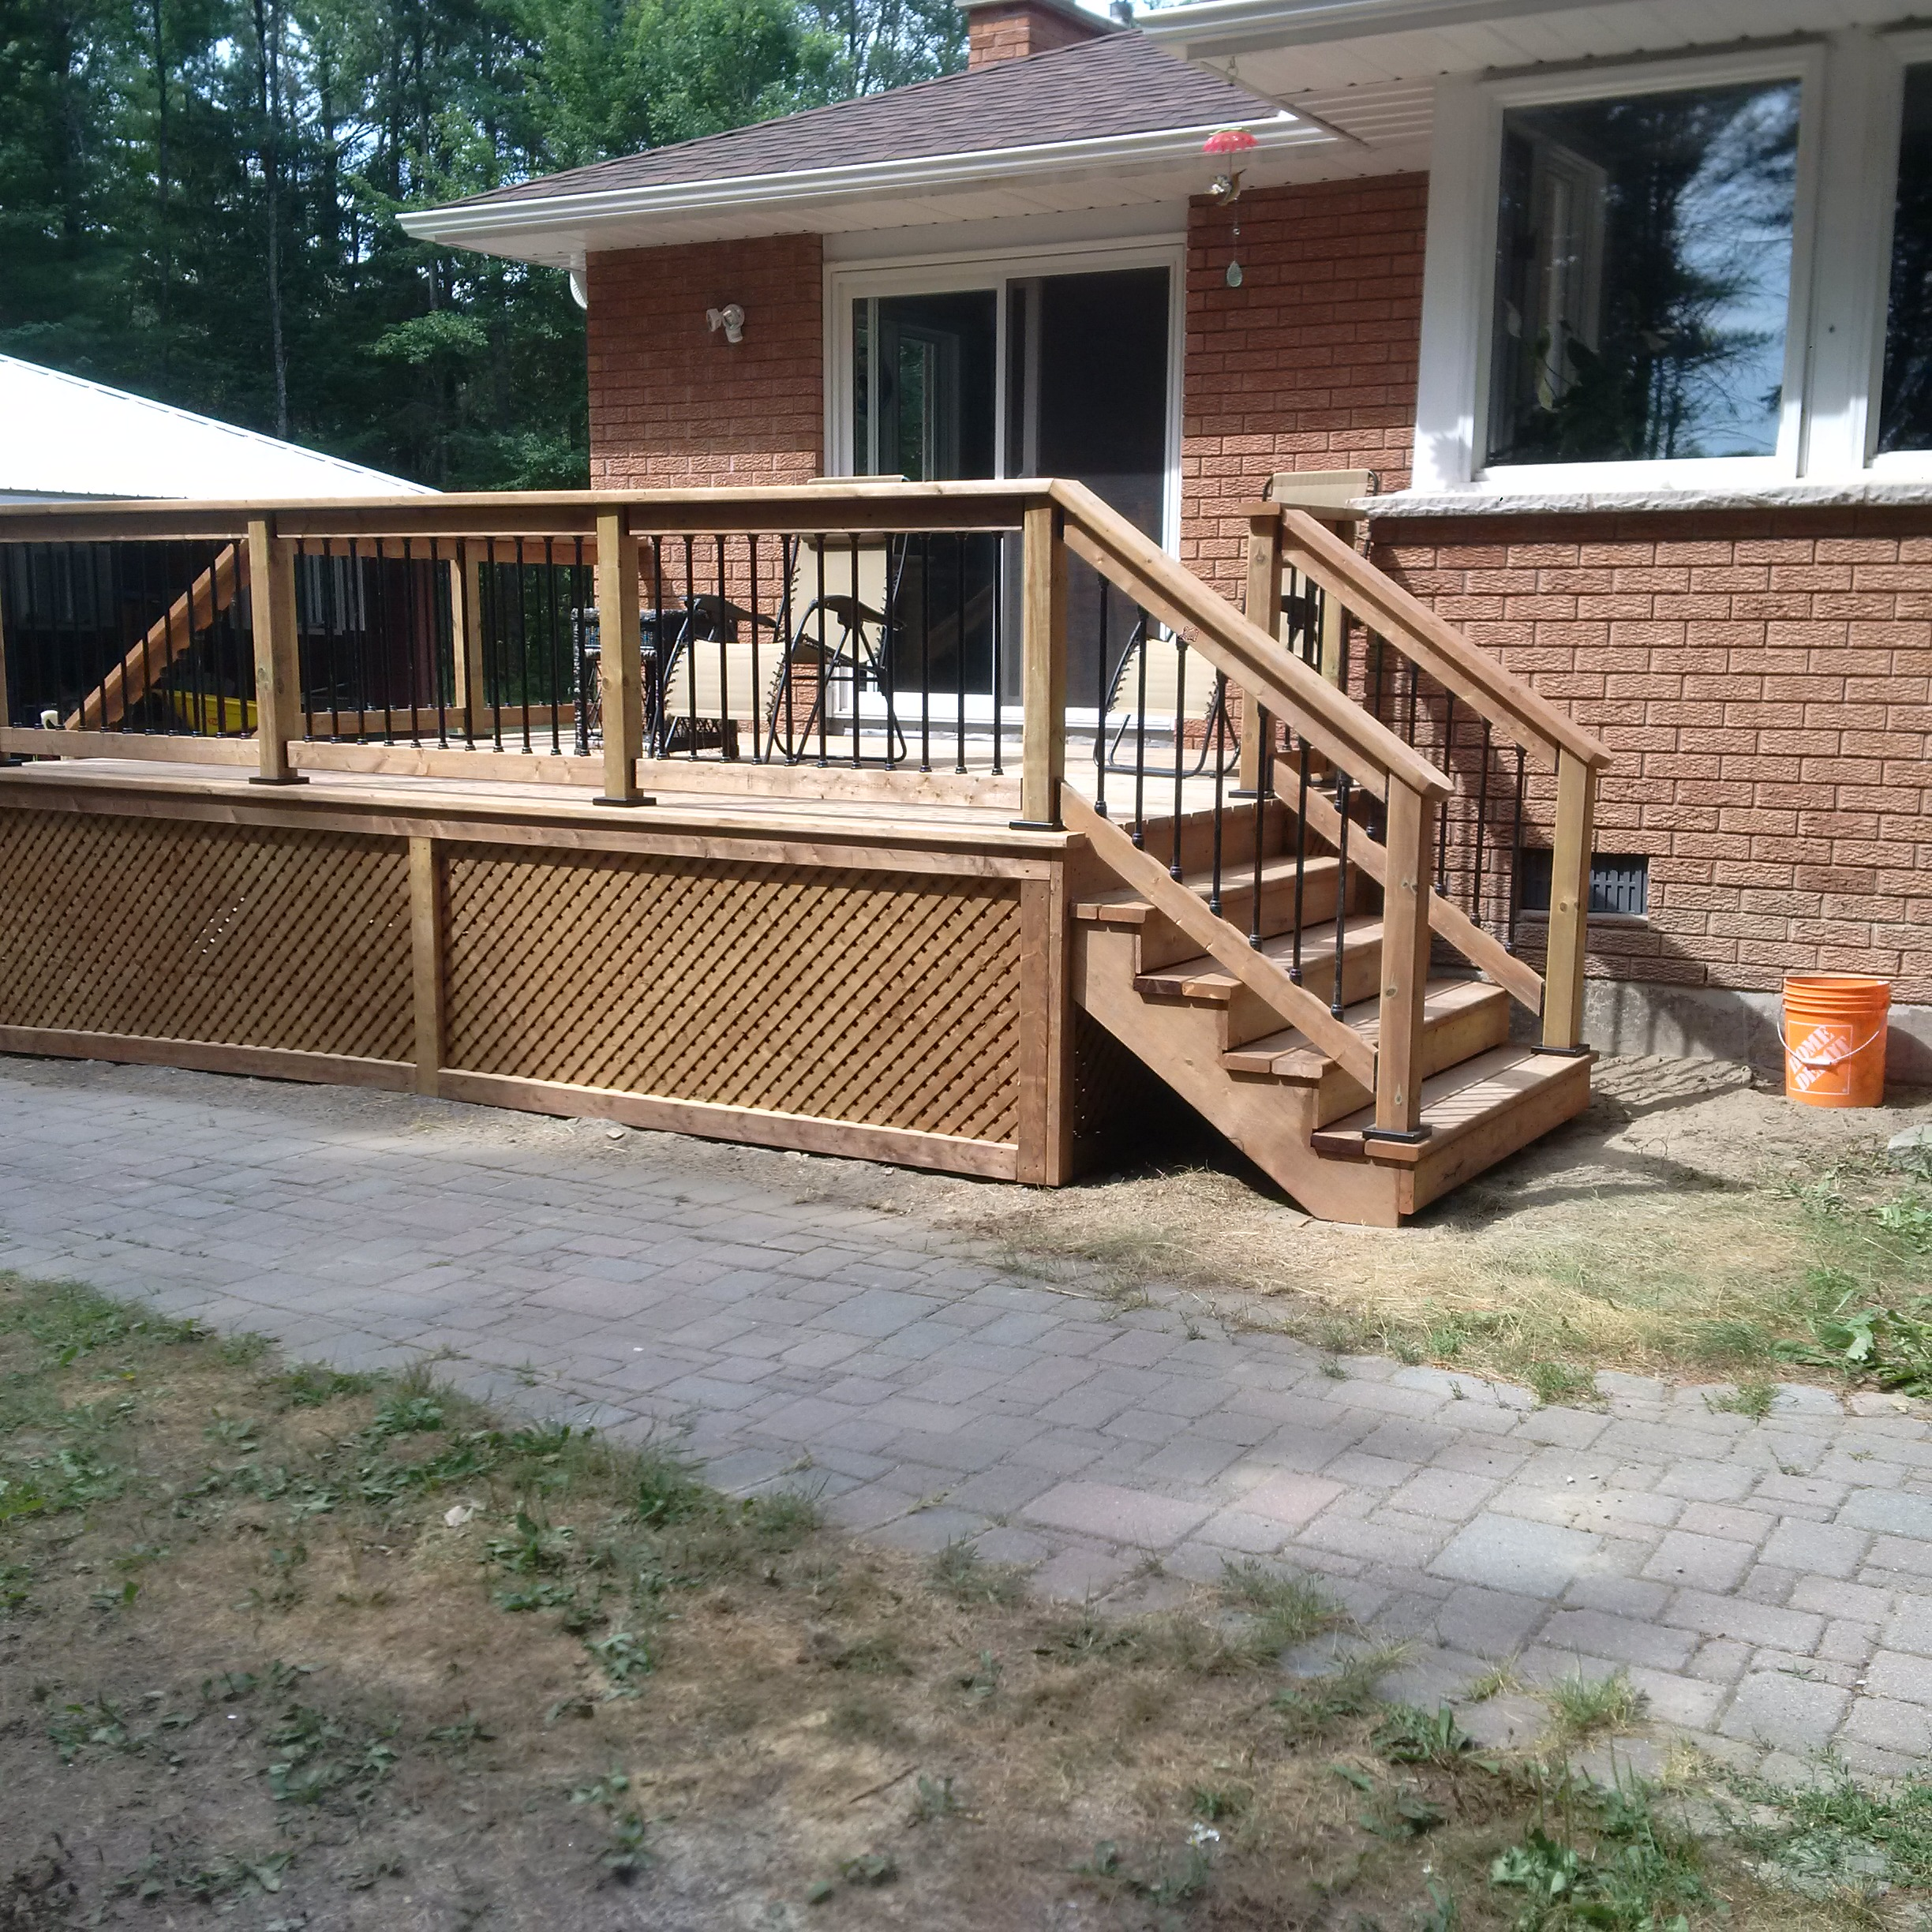 Above ground pool deck, treated wood